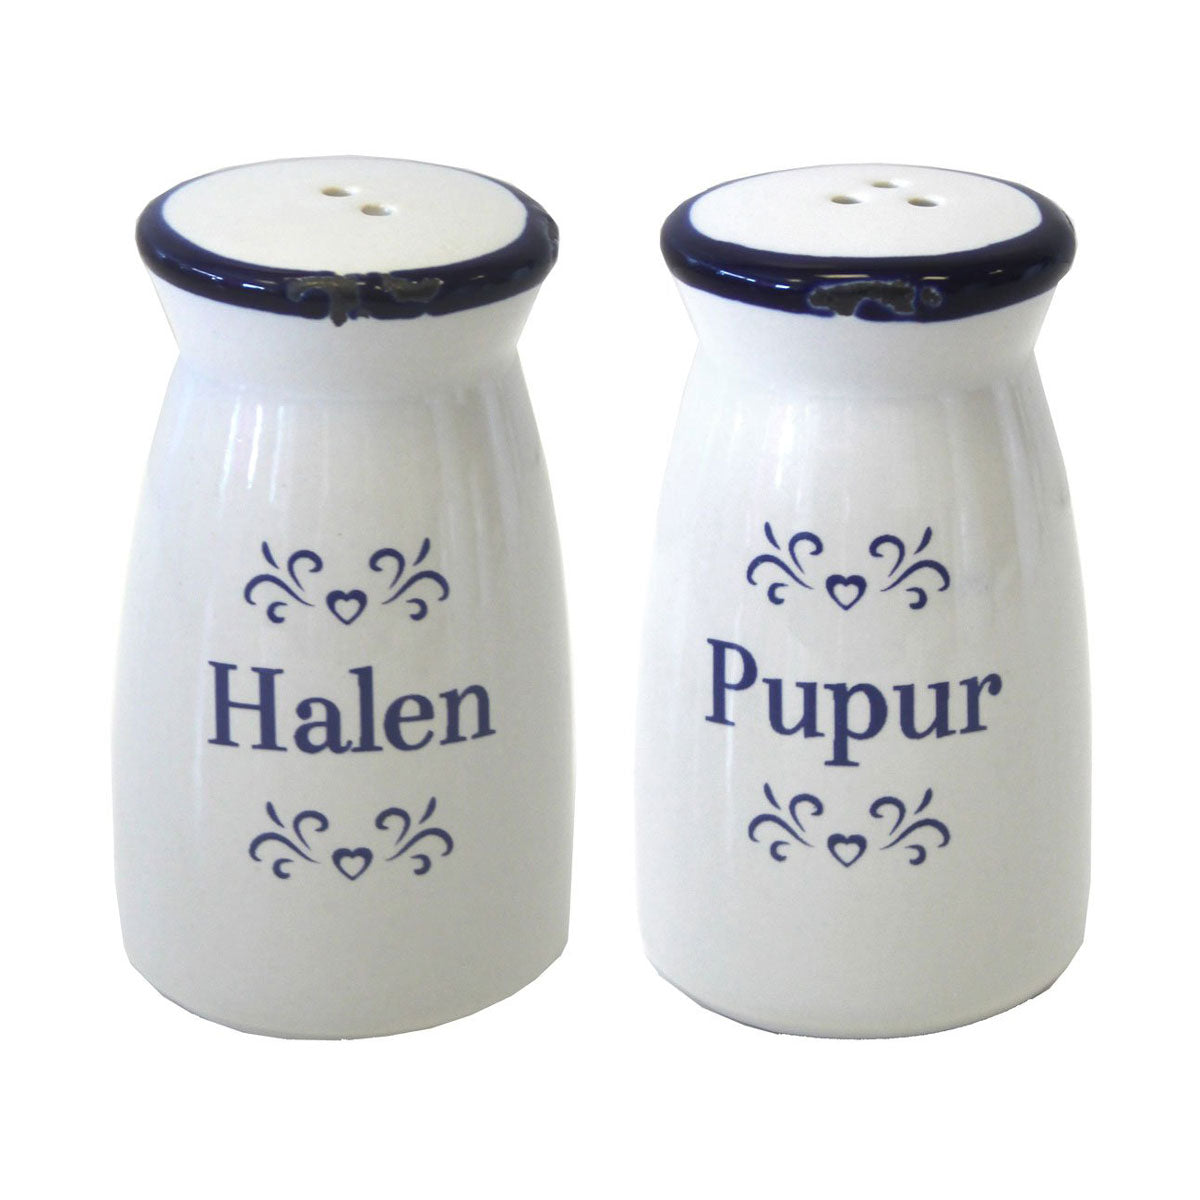 Shaker Set - Blue & White Ceramic - Halen & Pupur - Salt & Pepper